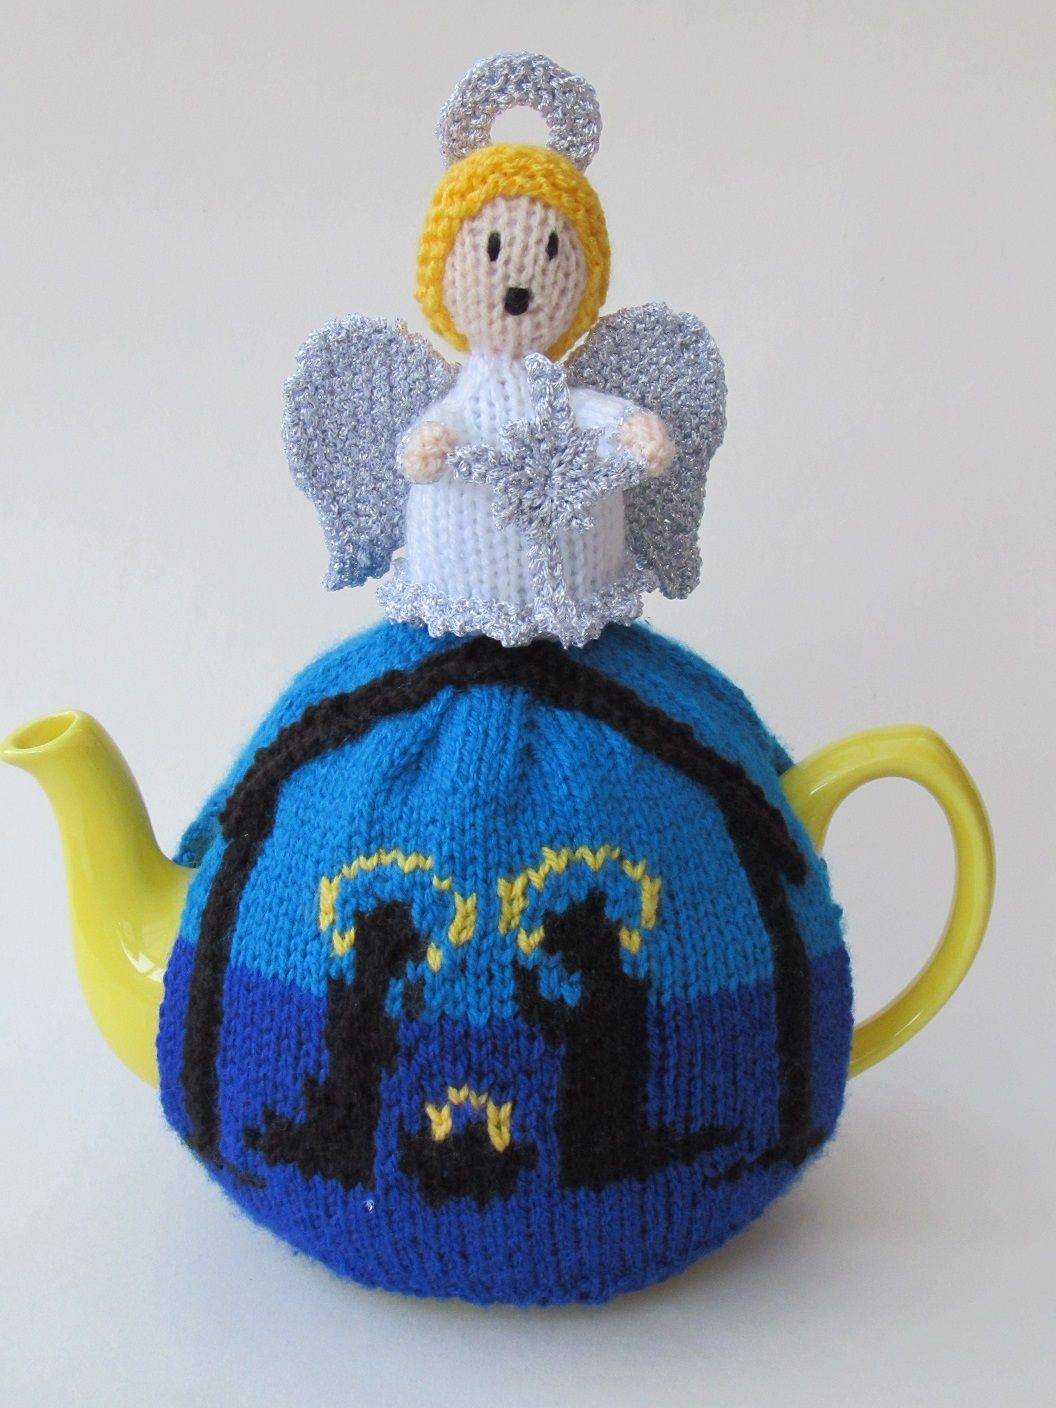 The holy night nativity tea cosy from the teacosyfolk range of tea the holy night nativity tea cosy from the teacosyfolk range of tea cosies has tea cosy knitting patterntea bankloansurffo Choice Image